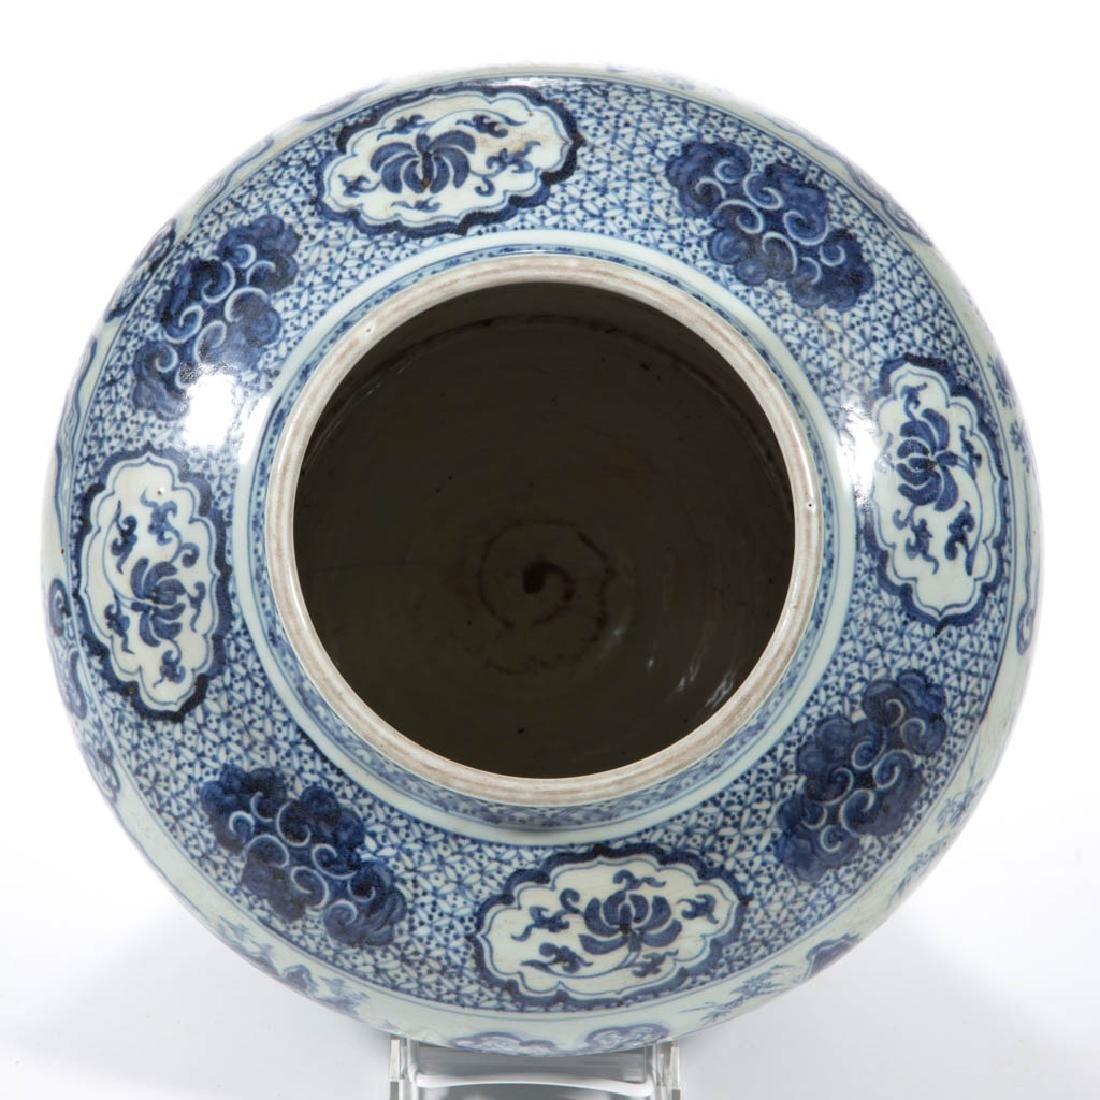 CHINESE EXPORT QING-STYLE PORCELAIN BLUE AND WHITE JAR - 5